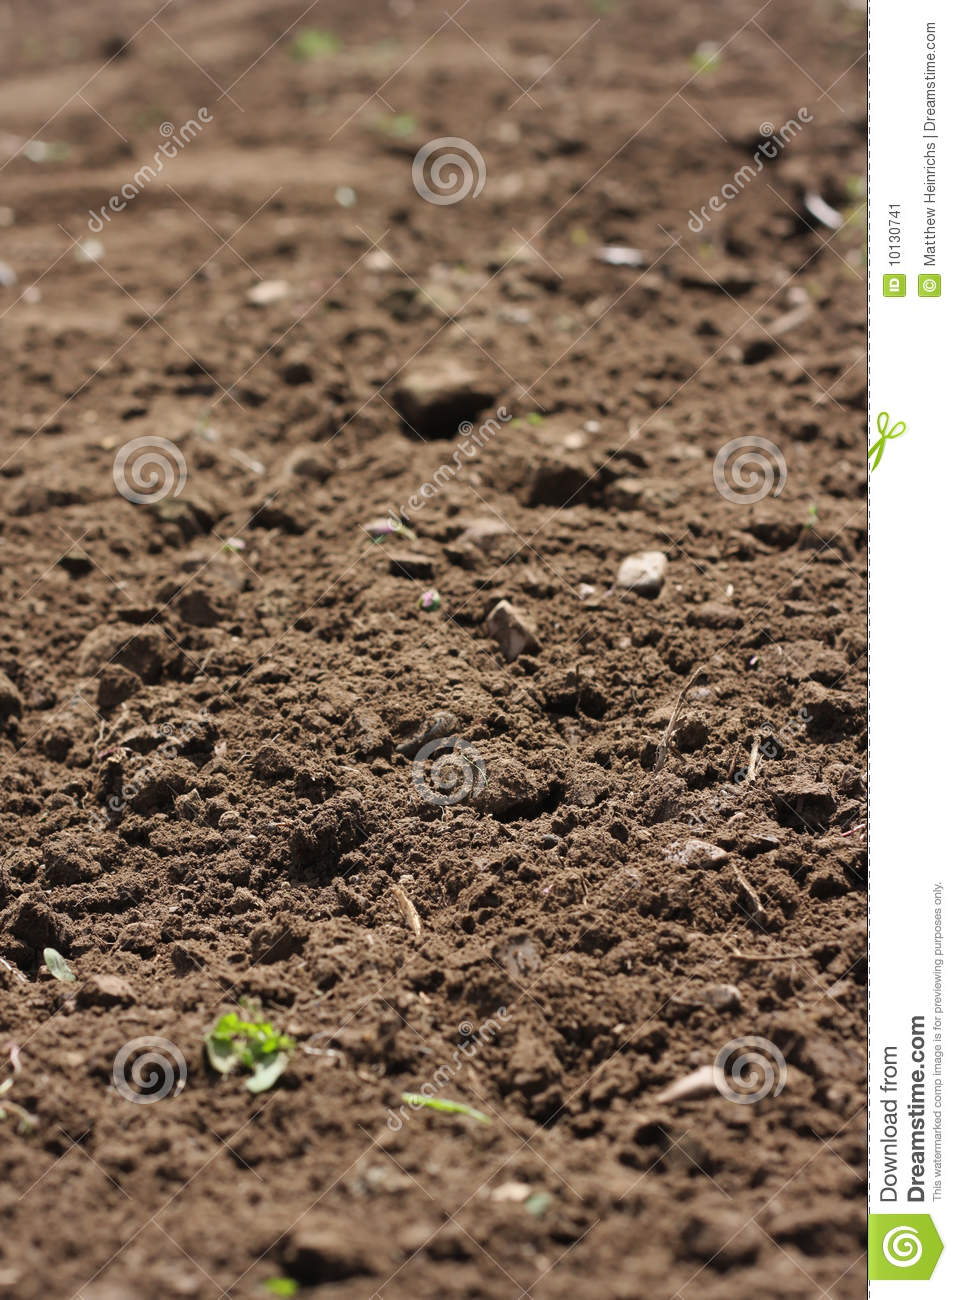 Freshly cultivated garden soil stock image image 10130741 for Soil quality definition